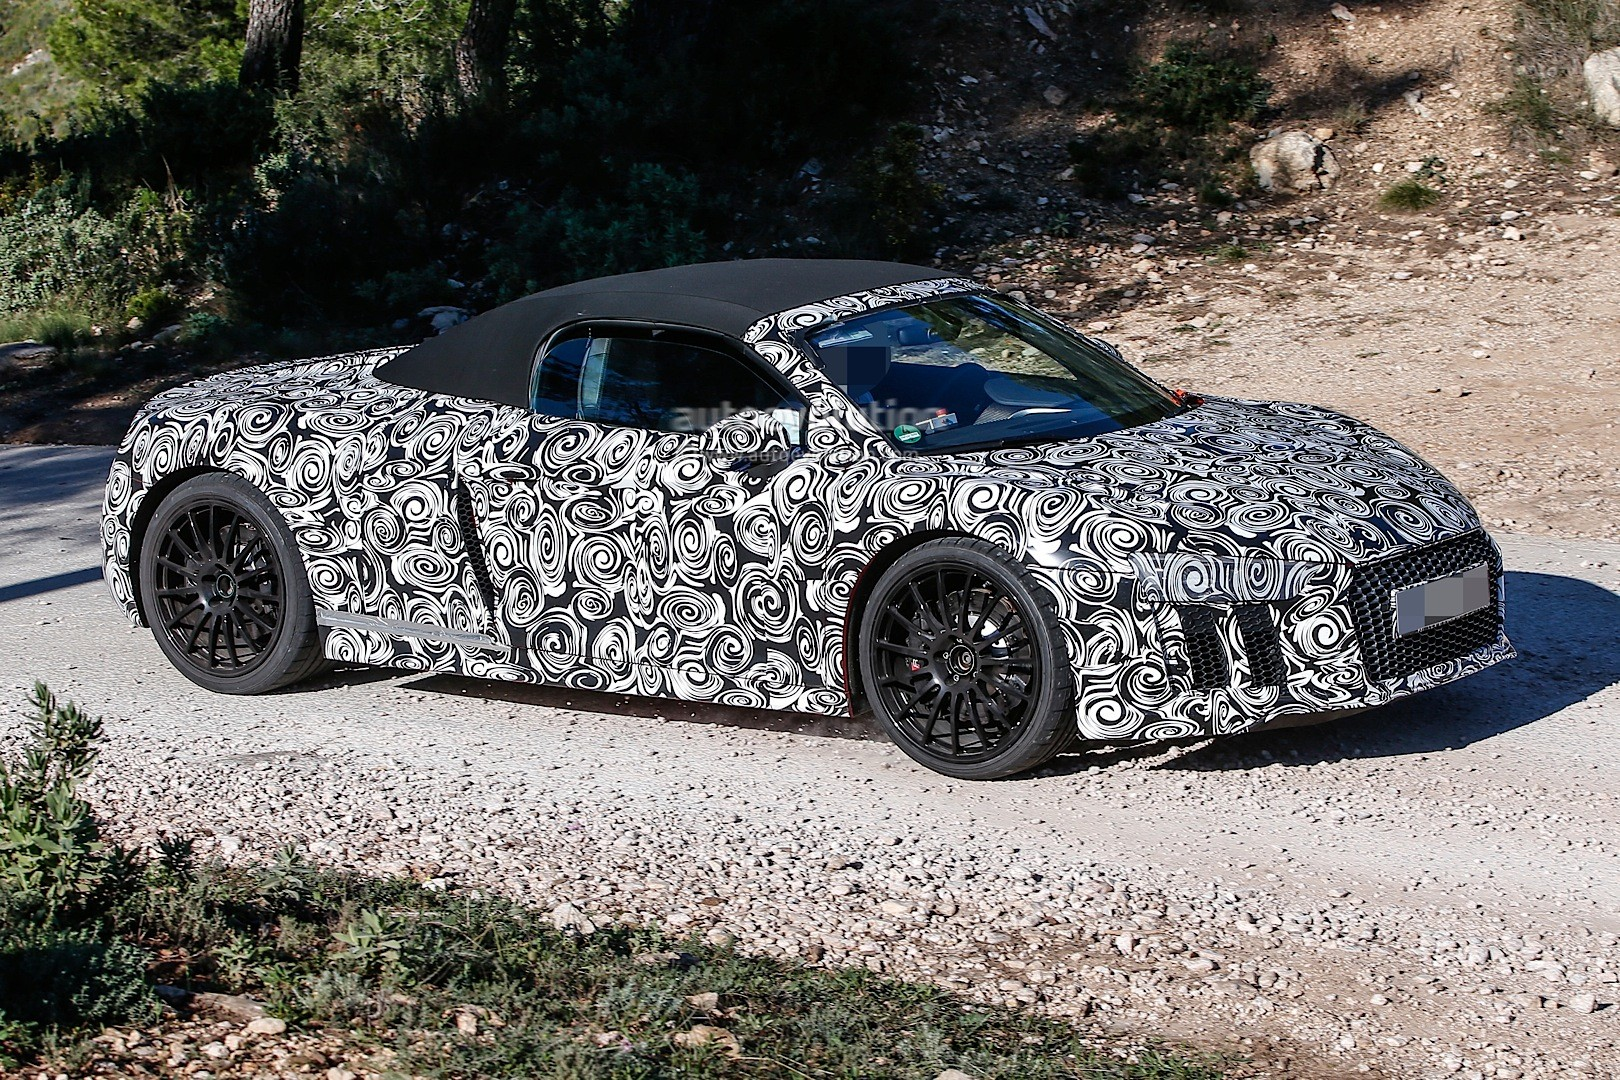 2017 Audi R8 Spyder Spied In Full Camo Funny Sticker Asks